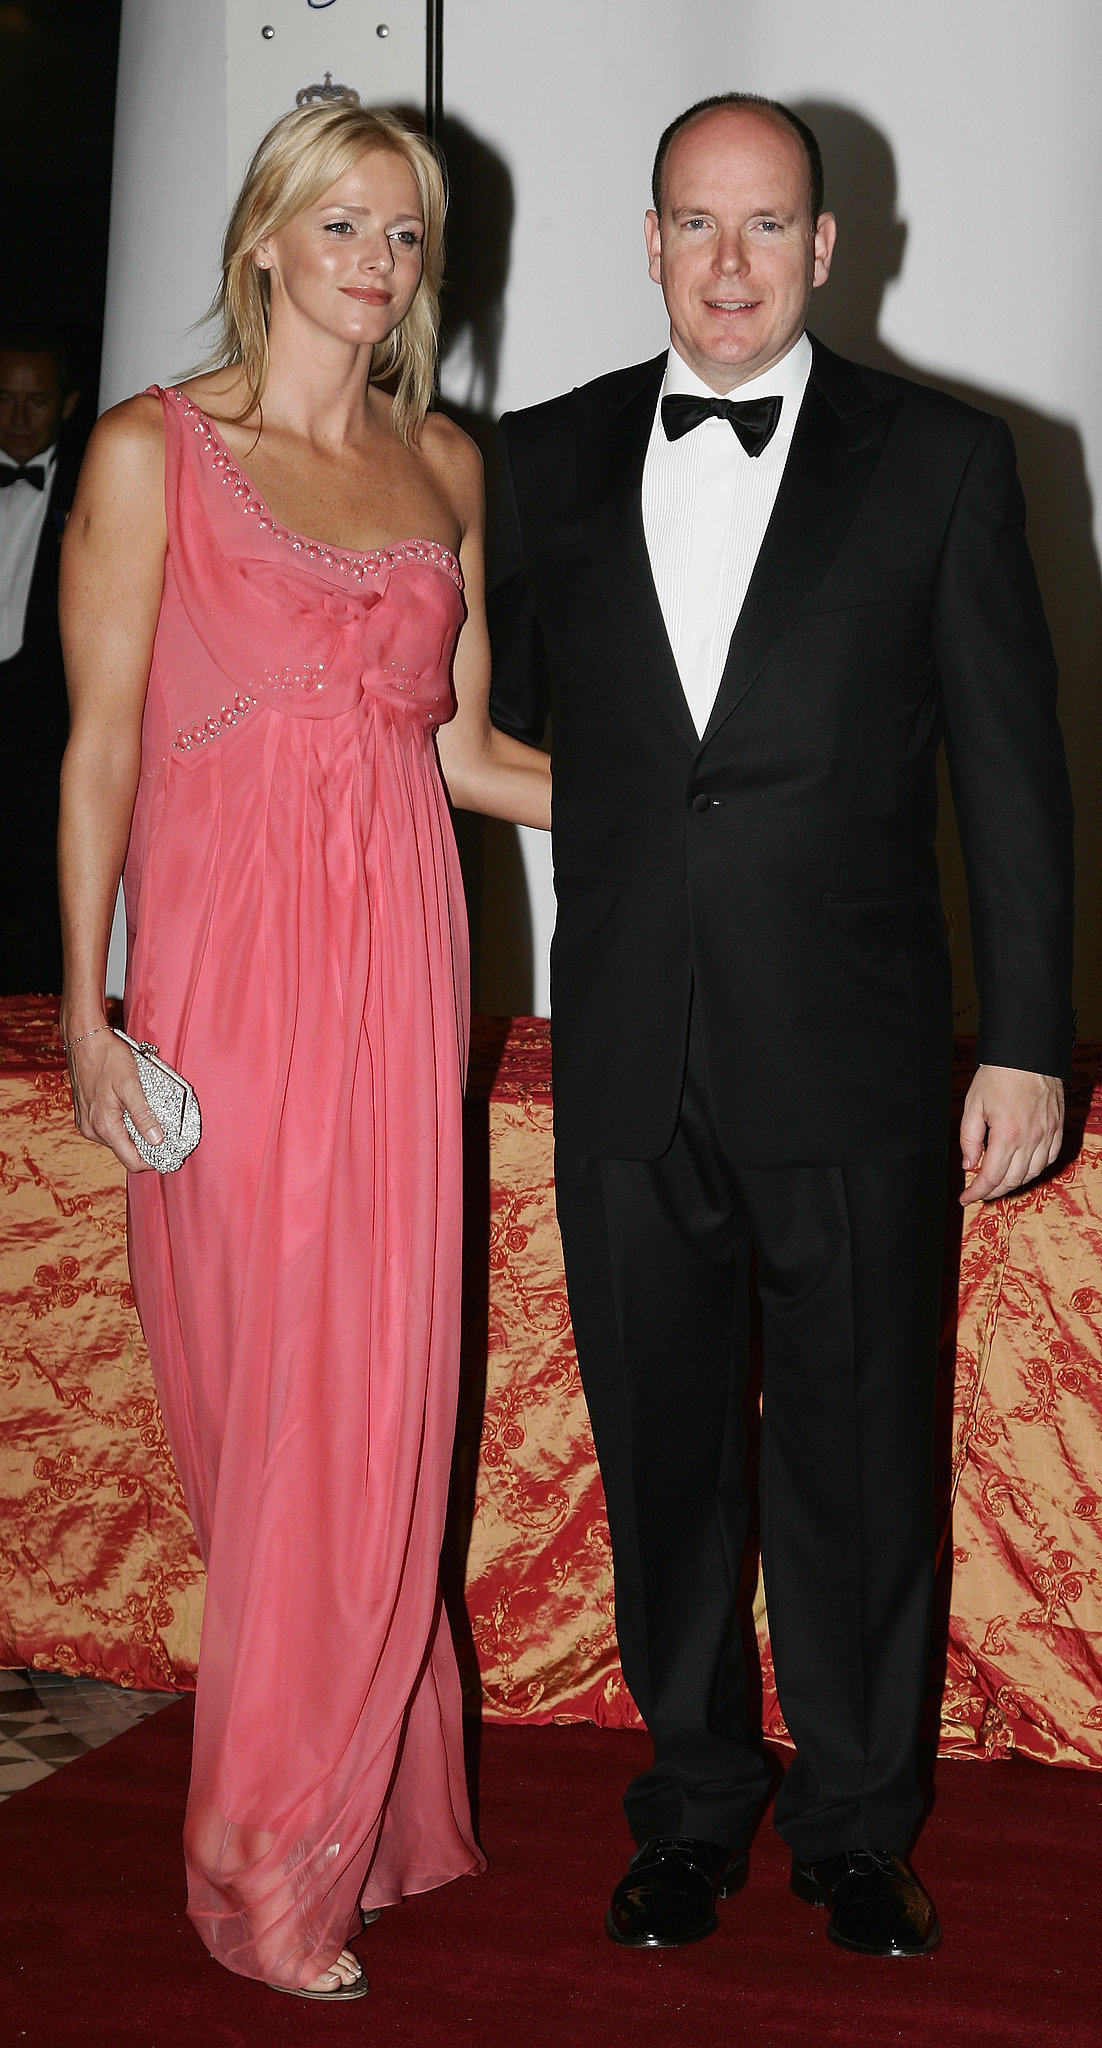 Looking fresh-faced, Princess Charlene posed for pictures alongside Prince Albert at the gala dinner of the Monaco Formula One Grand Prix in May 2007.